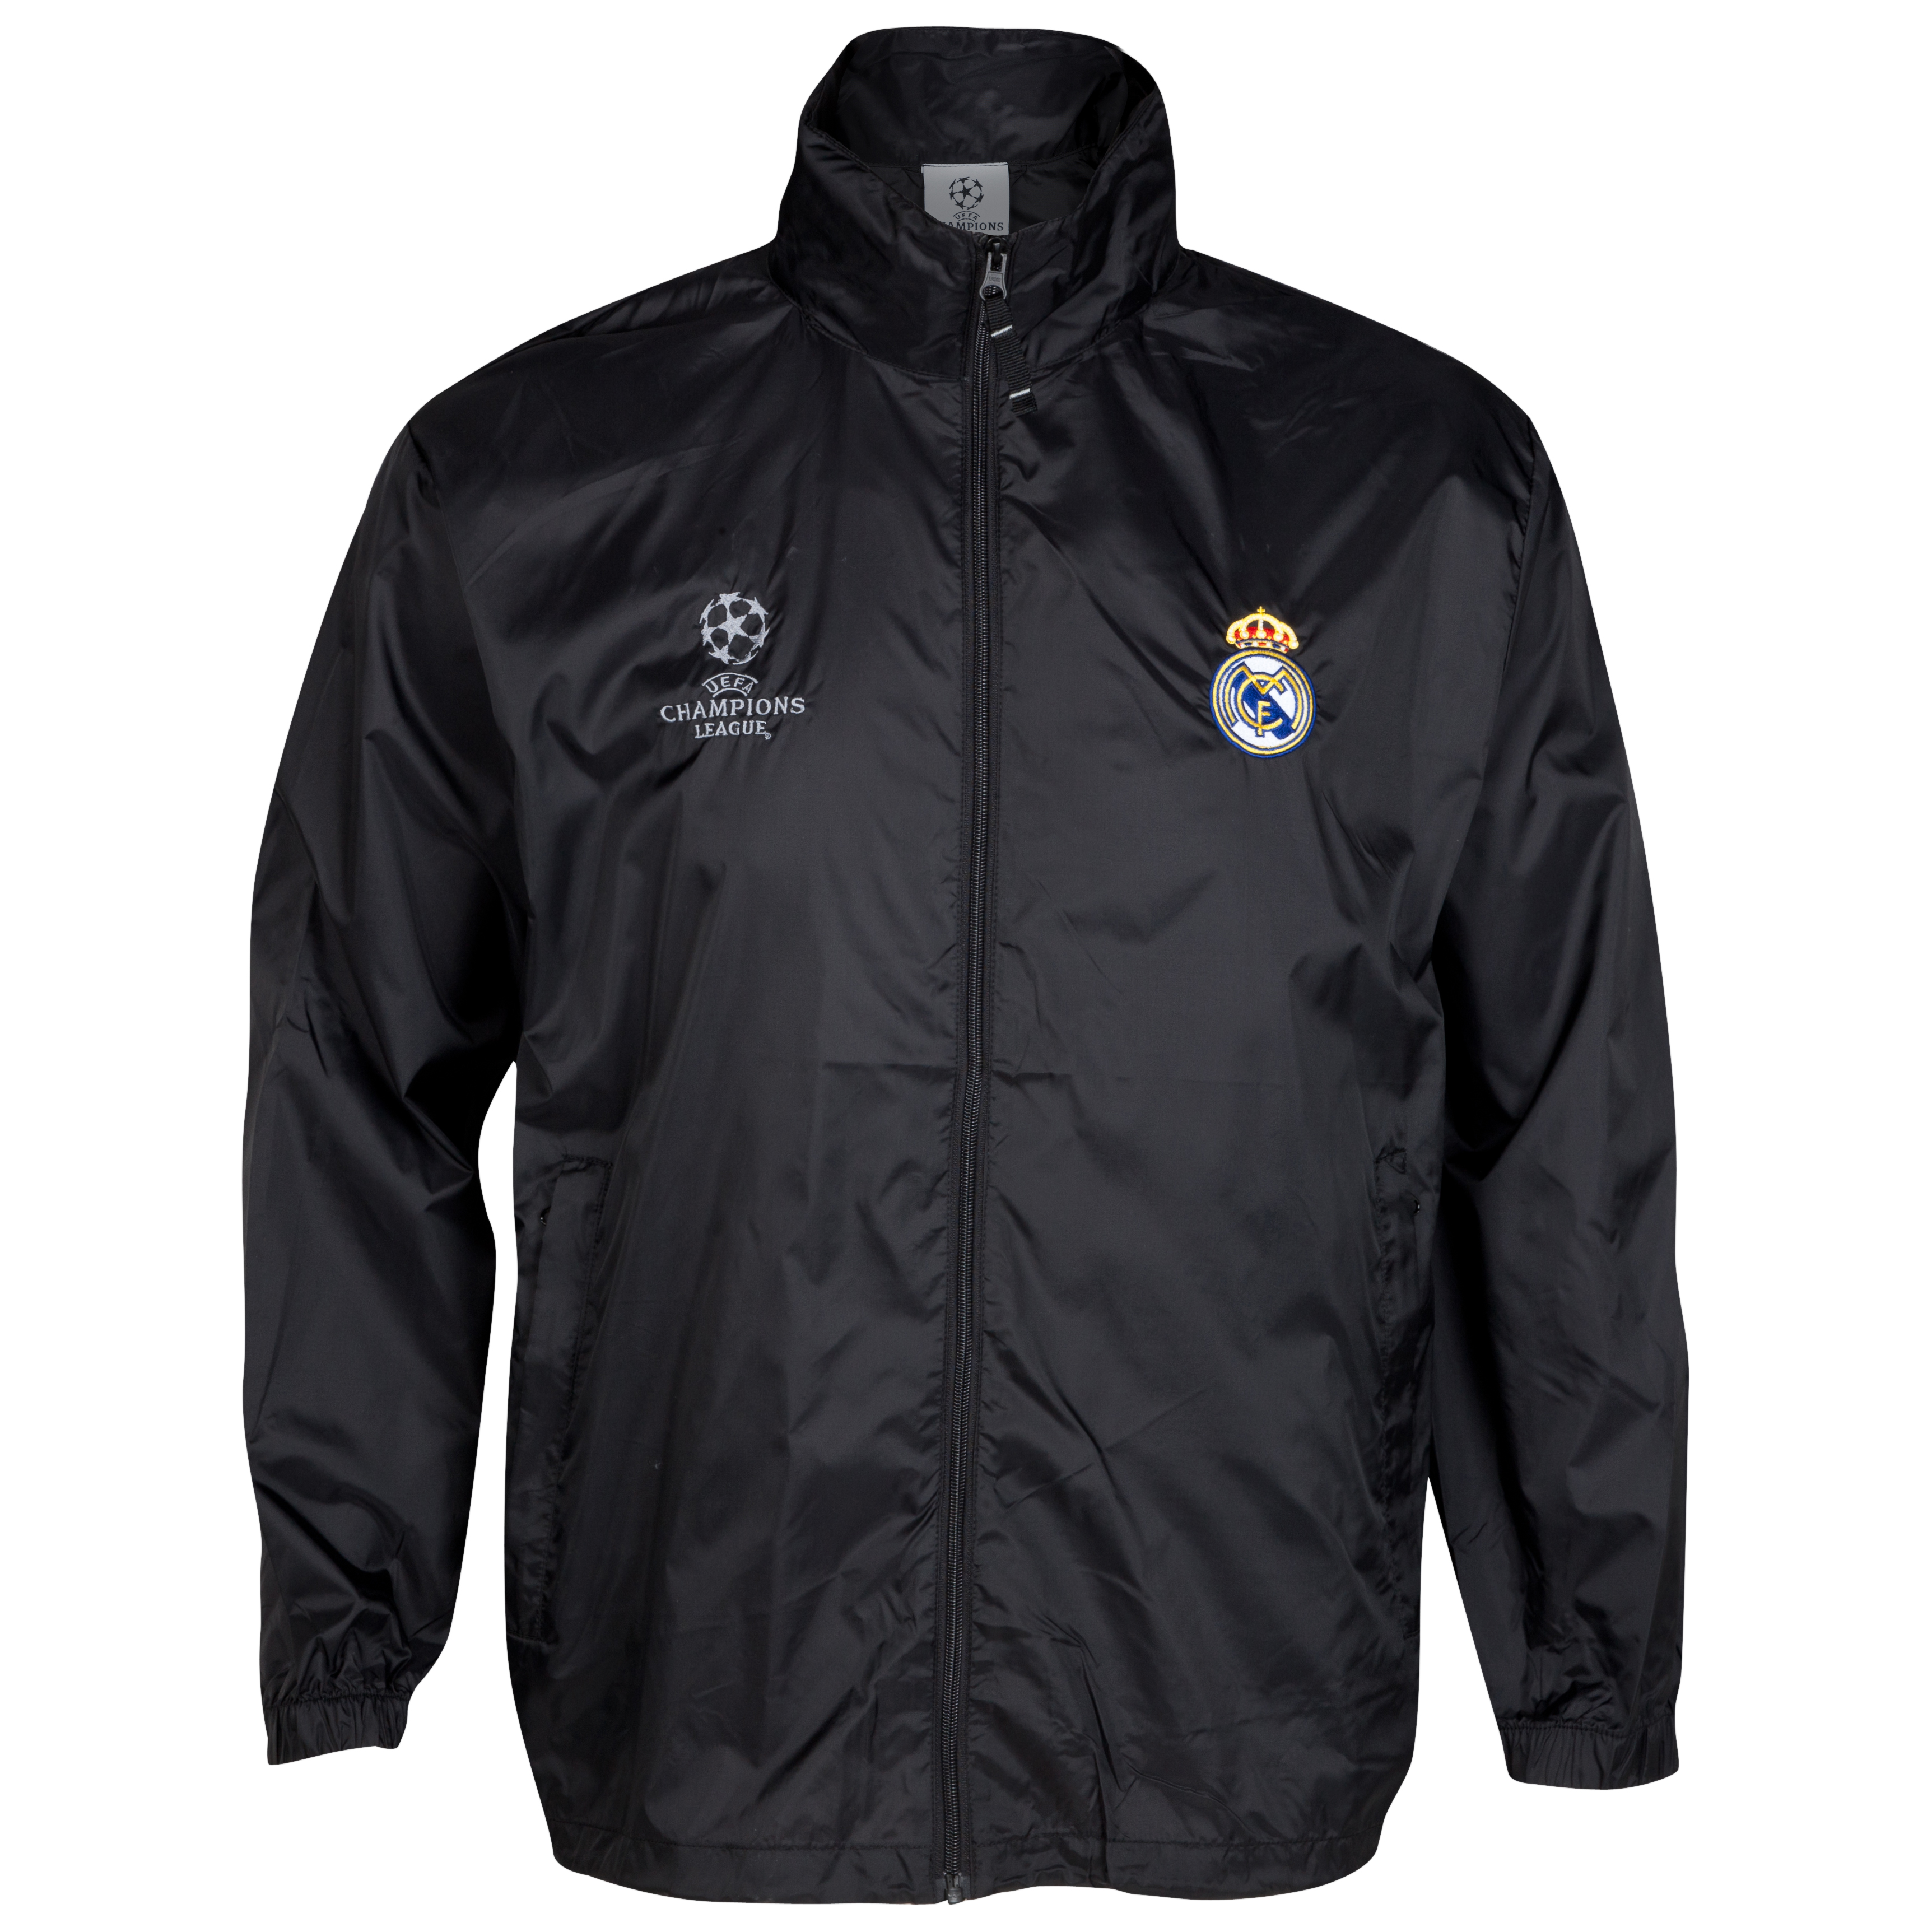 Real Madrid UEFA Champions League Embroidered Windbreaker - Black